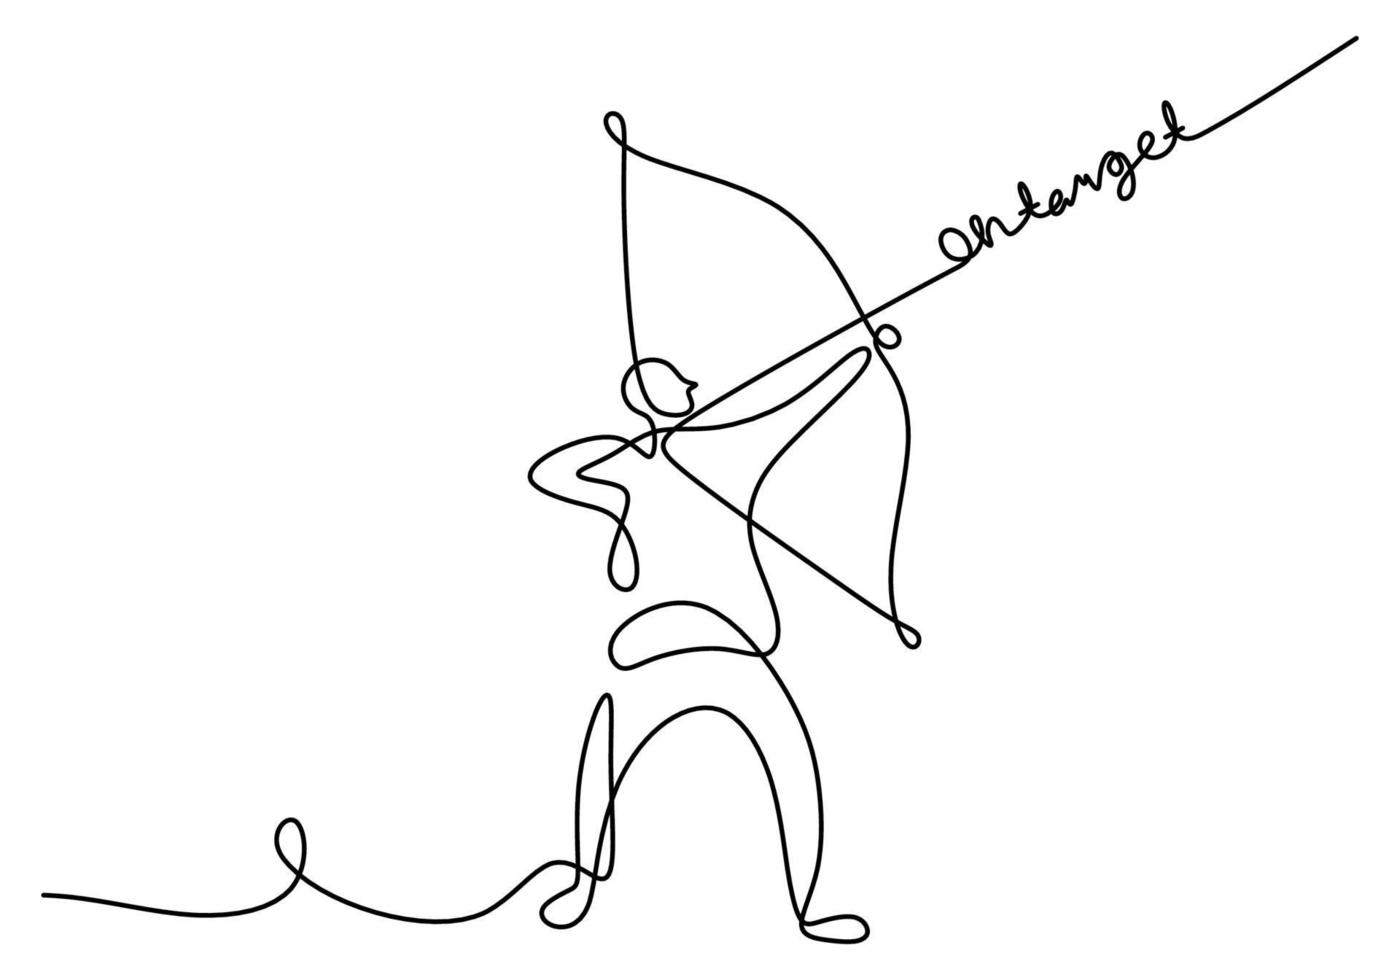 Continuous one line drawing of young energetic archer woman pulling the bow to shooting an archery target. A professional archer female focus to hit target hand drawn with minimalist design vector